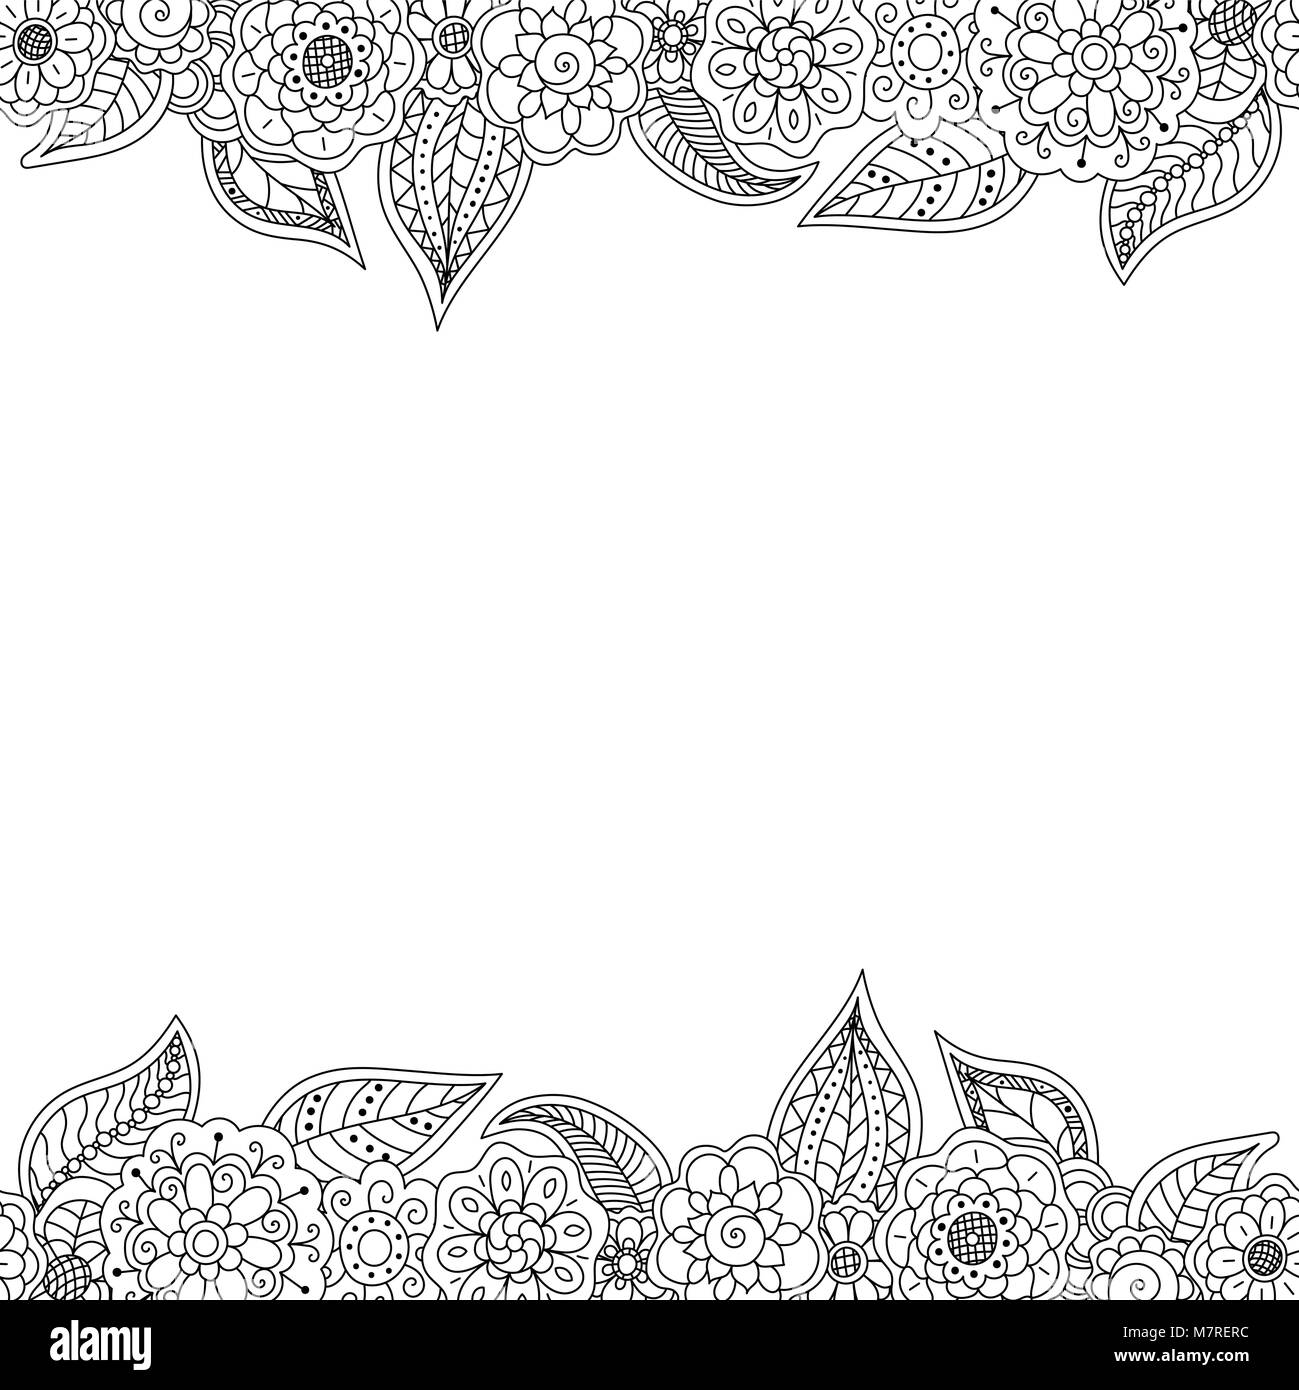 Decorative Black Flower Border Stock Image: Vector Seamless Decorative Border Of Doodle Floral